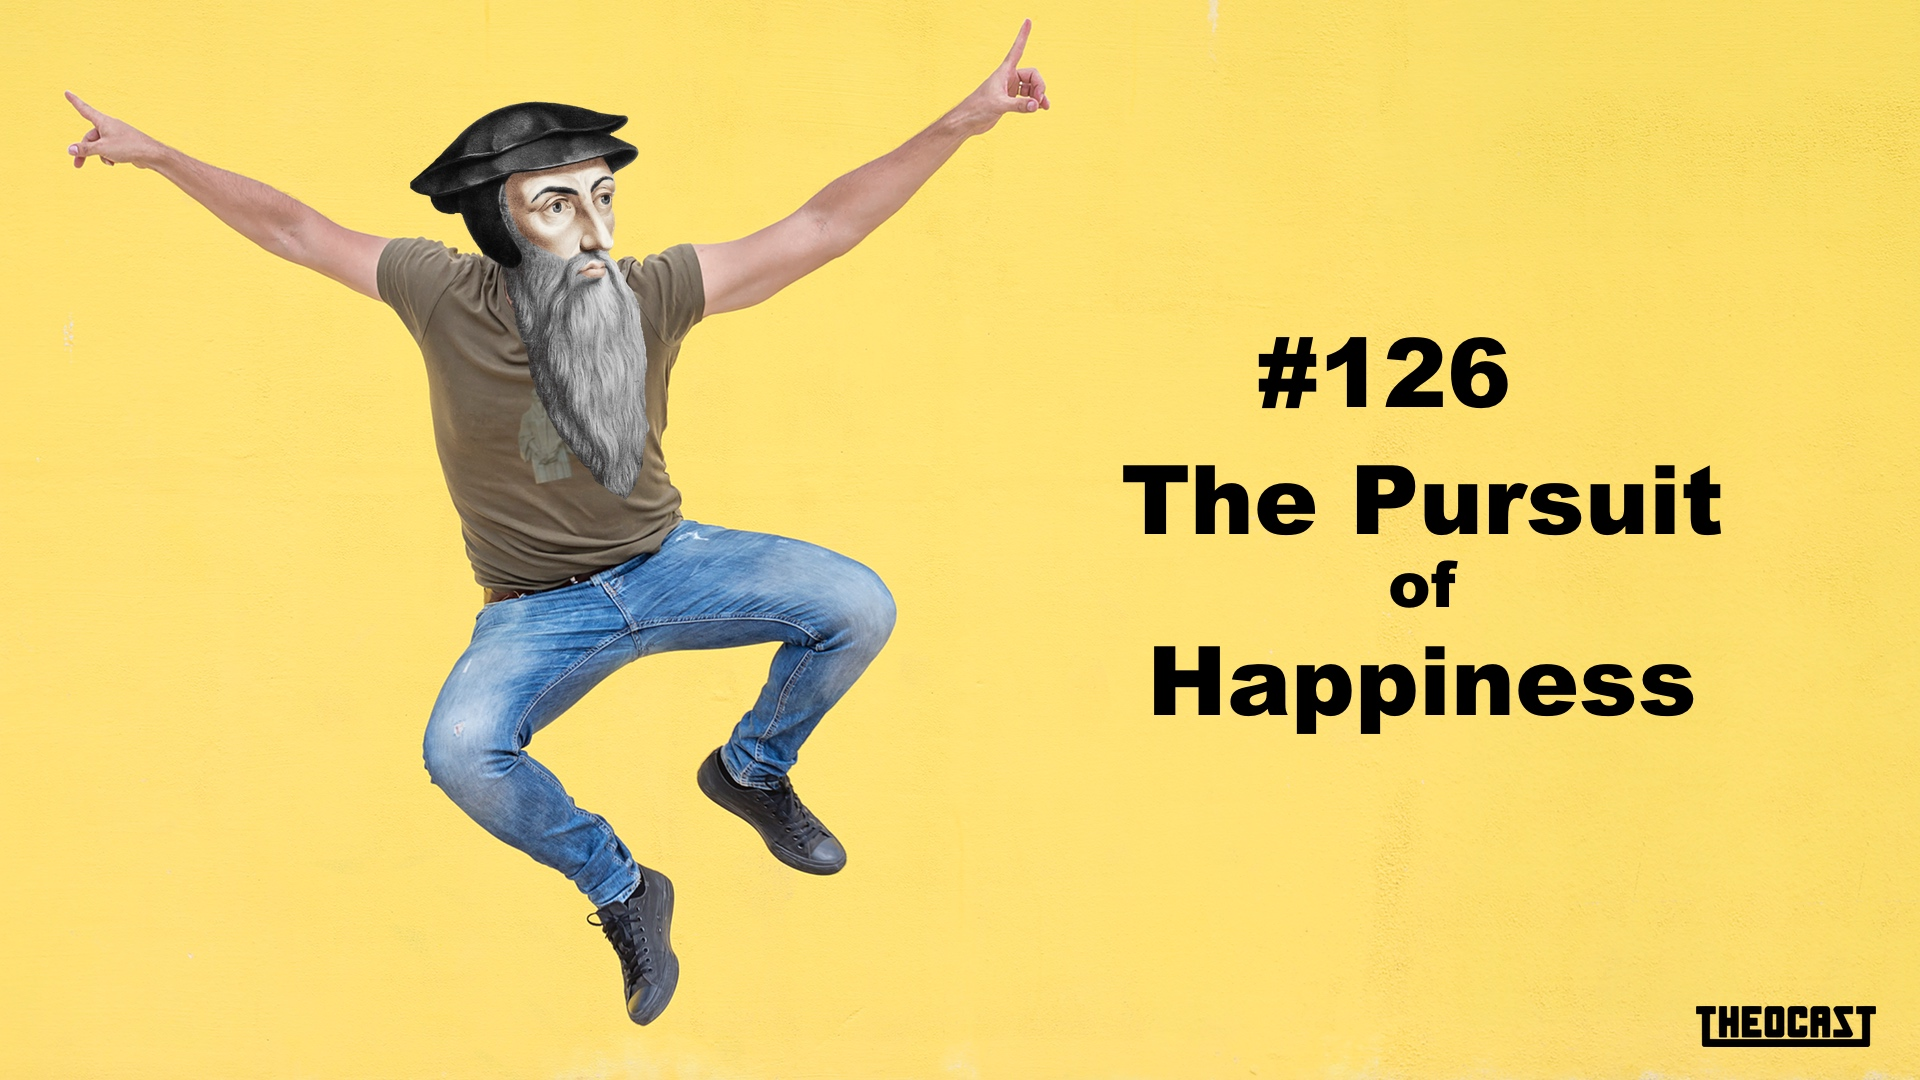 #126 The Pursuit of Happiness